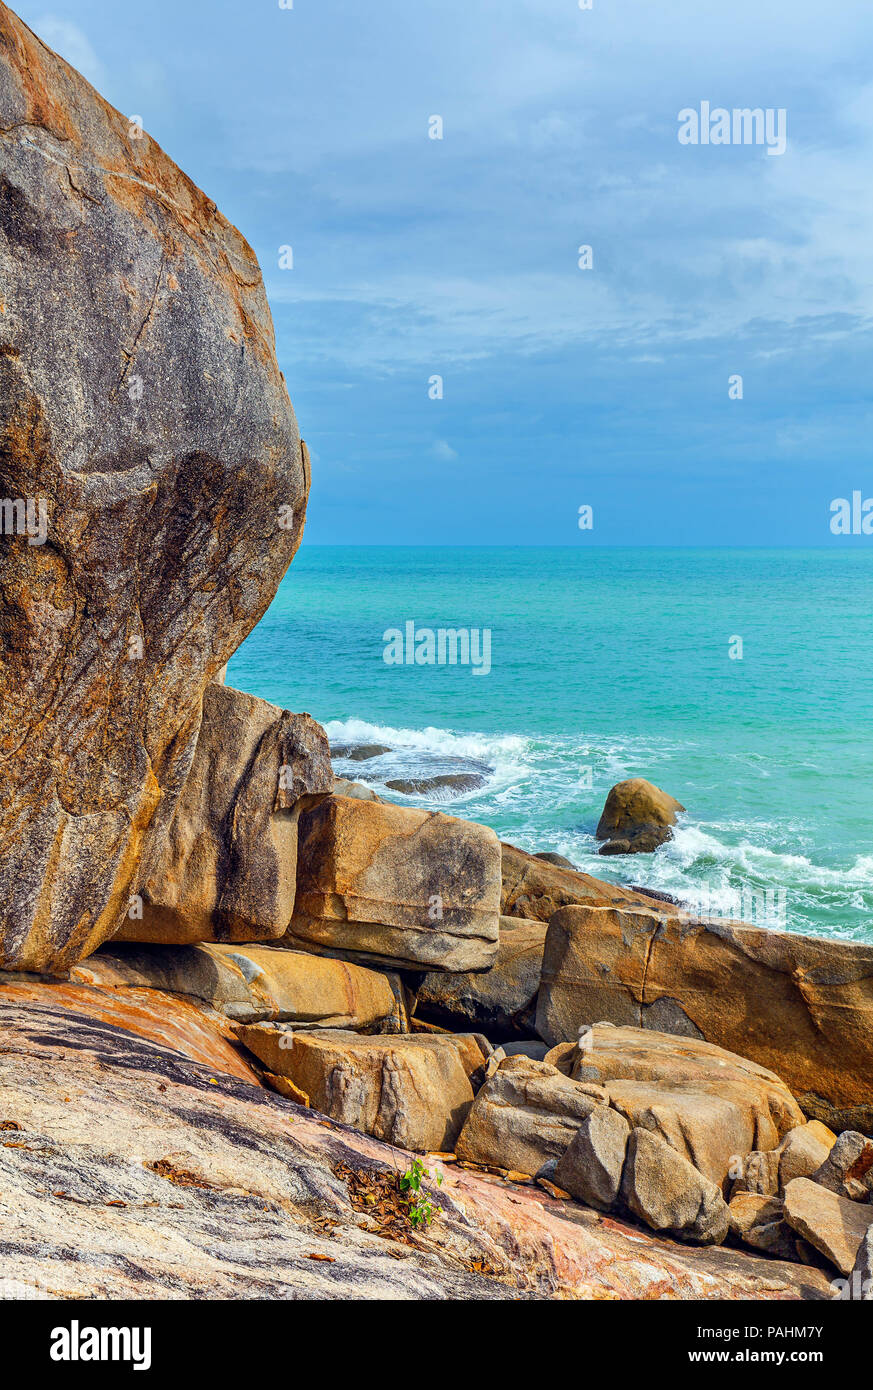 Rocky coast of Koh Samui in Thailand. - Stock Image